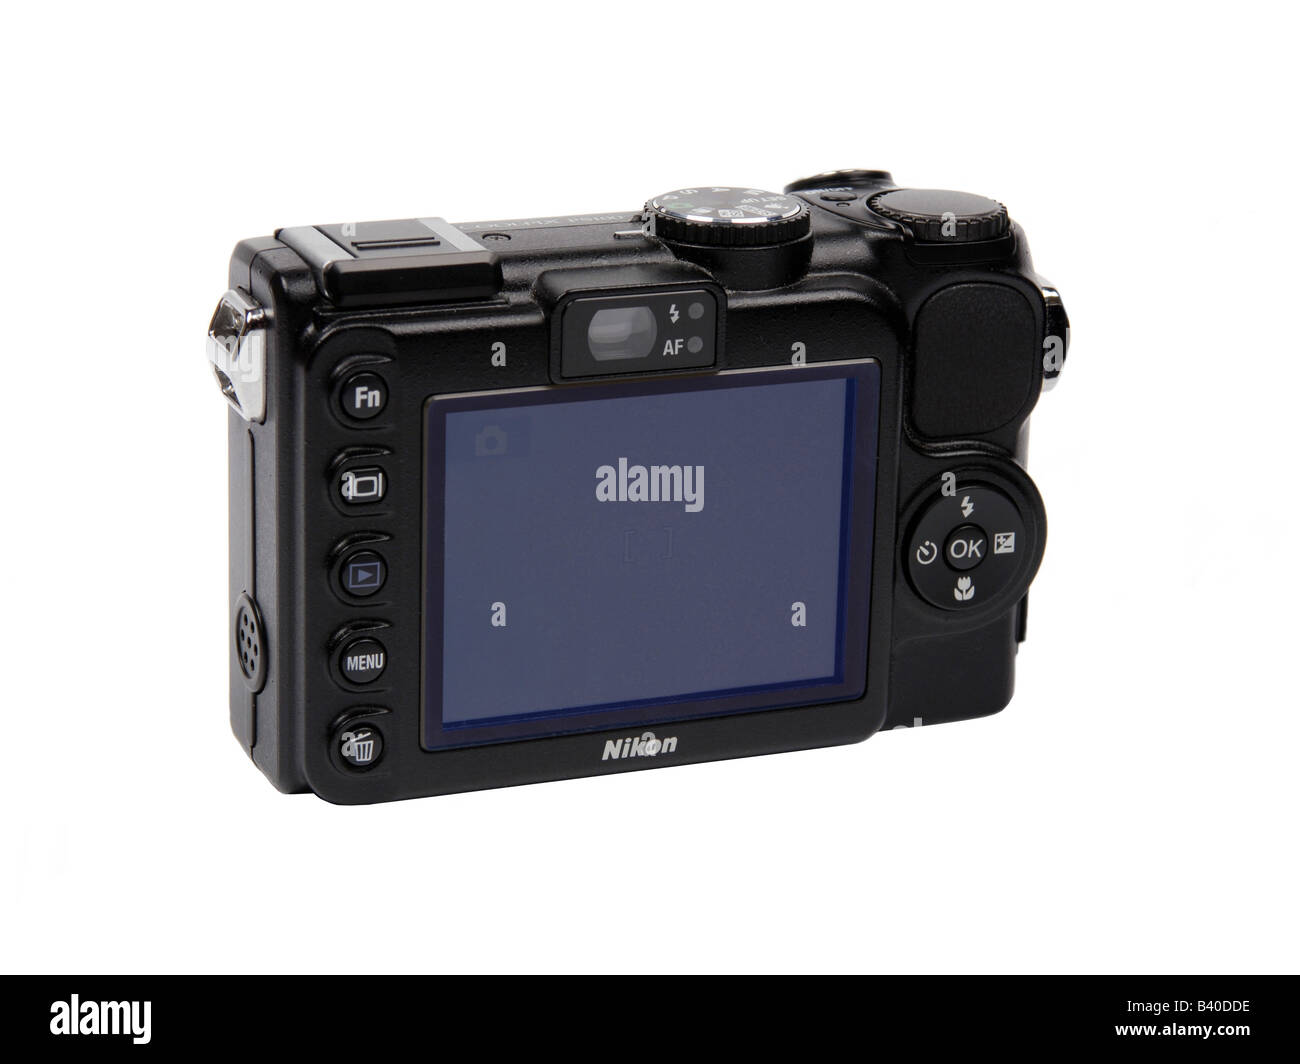 Nikon pocket Digital Camera - Stock Image